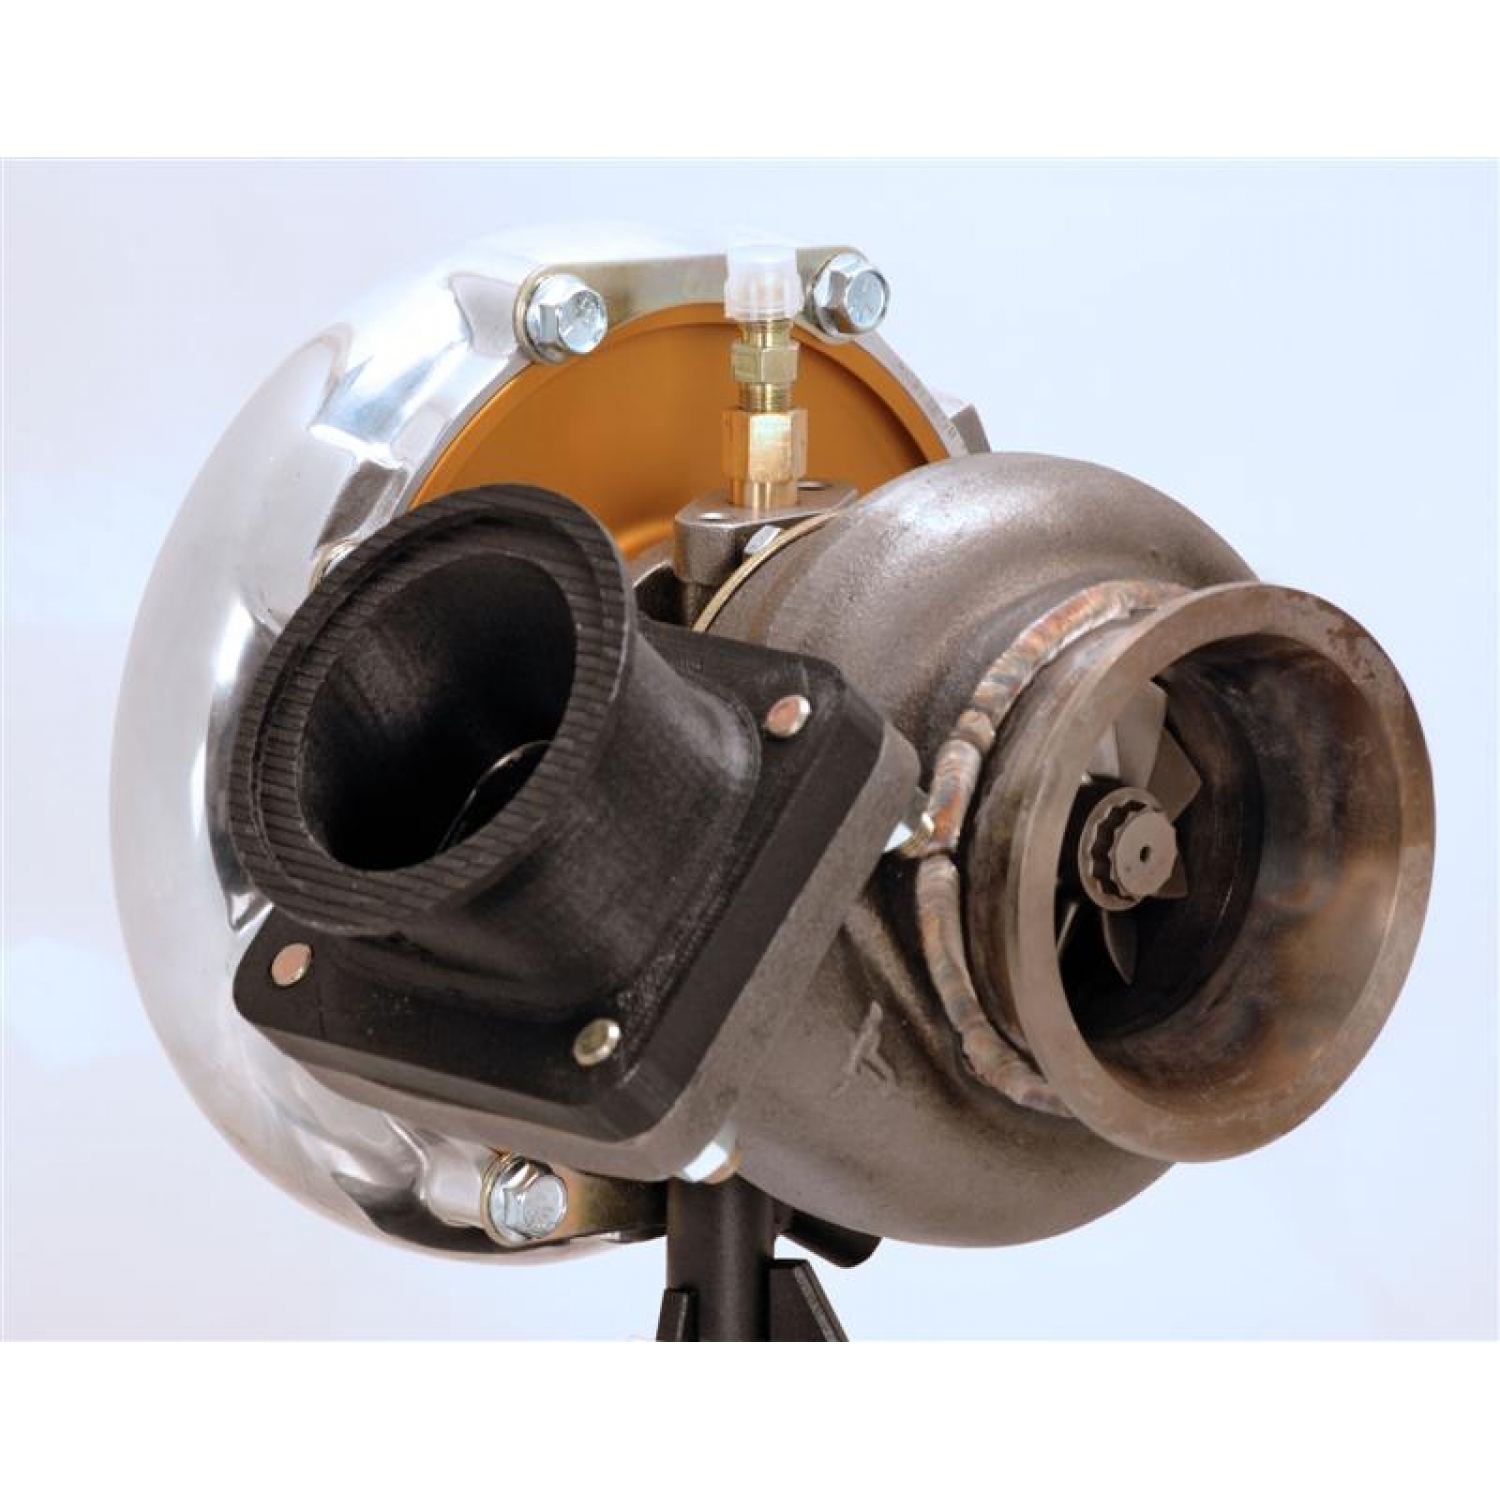 Agp Turbochargers Inc Store: Ford 6.0L 03.5-06 Stage 1 Turbo Upgrade Kit